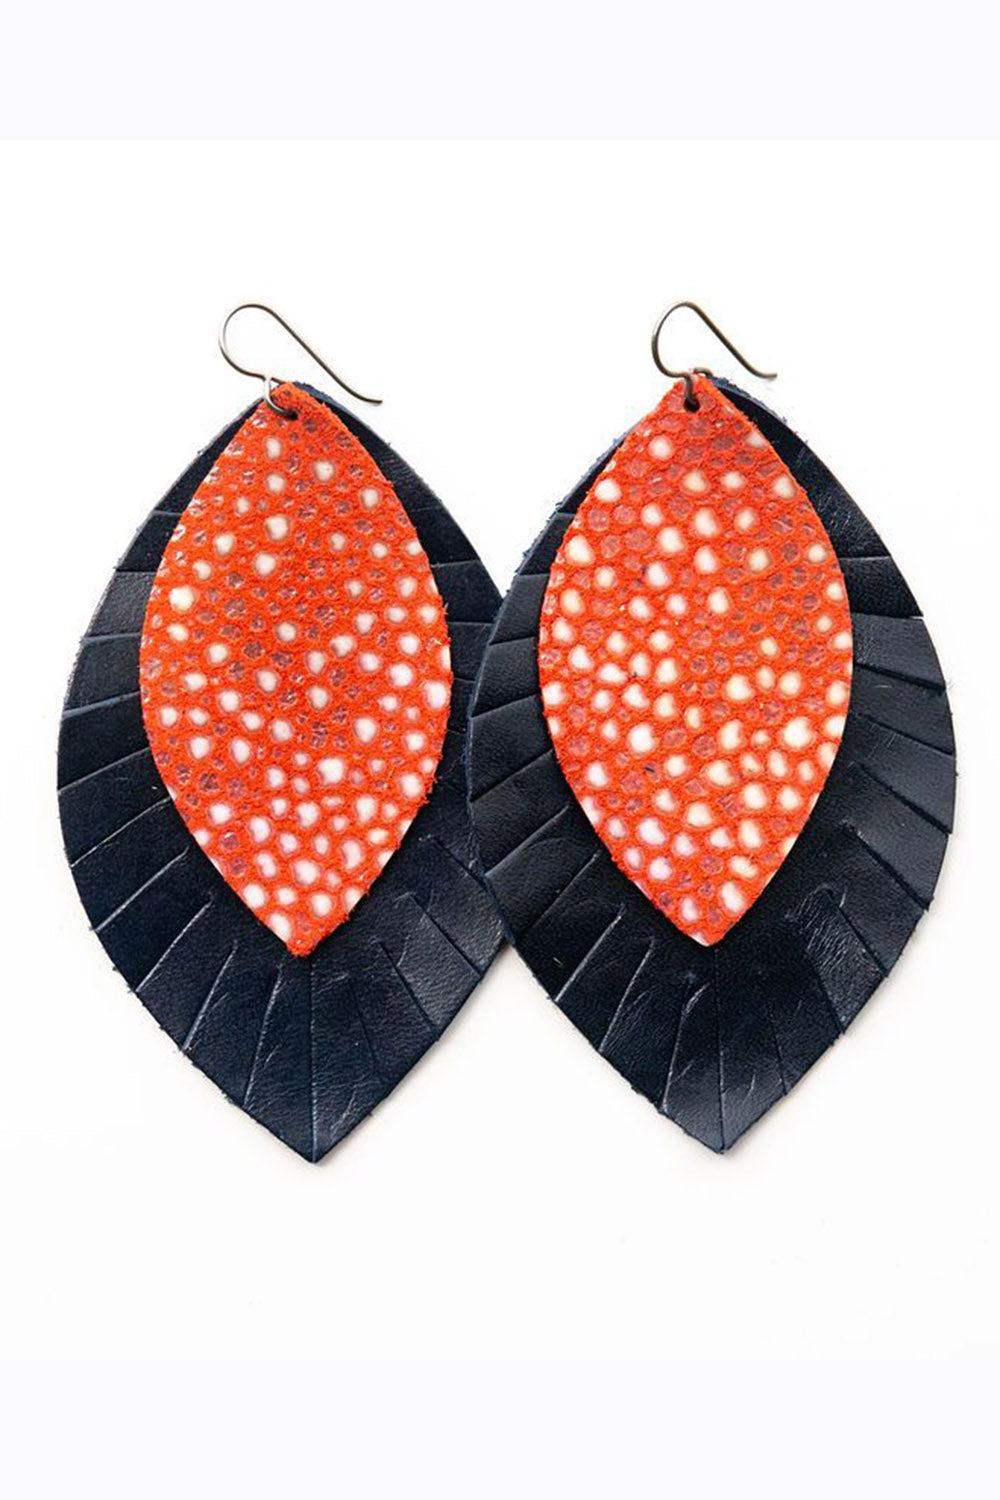 KEVA Double XL Earring - Speckled Navy